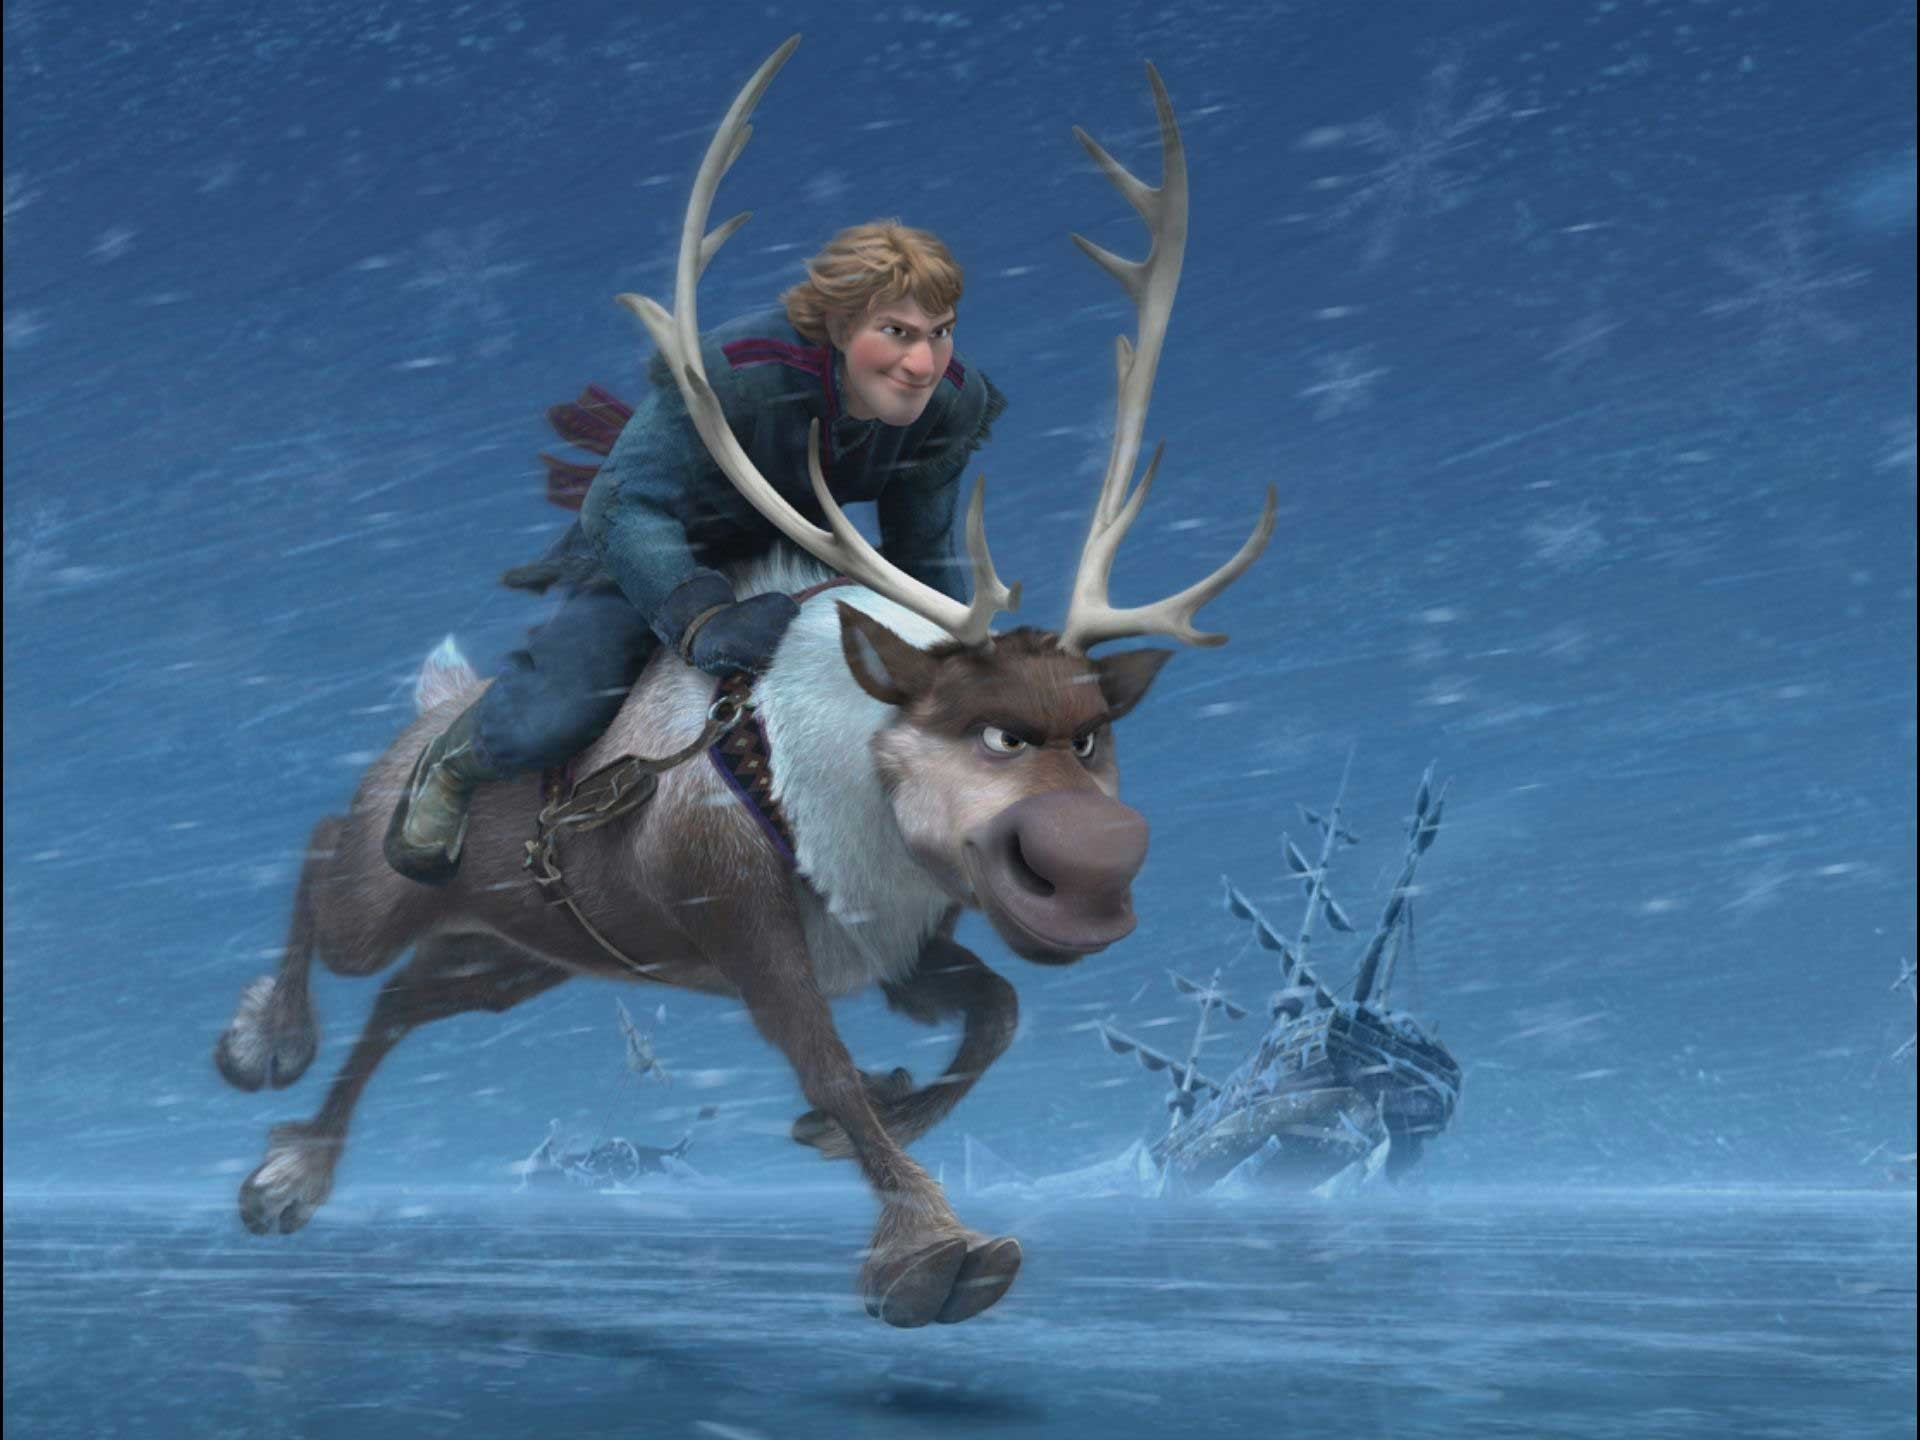 Res: 1920x1440, Free HD Frozen Movie Wallpapers